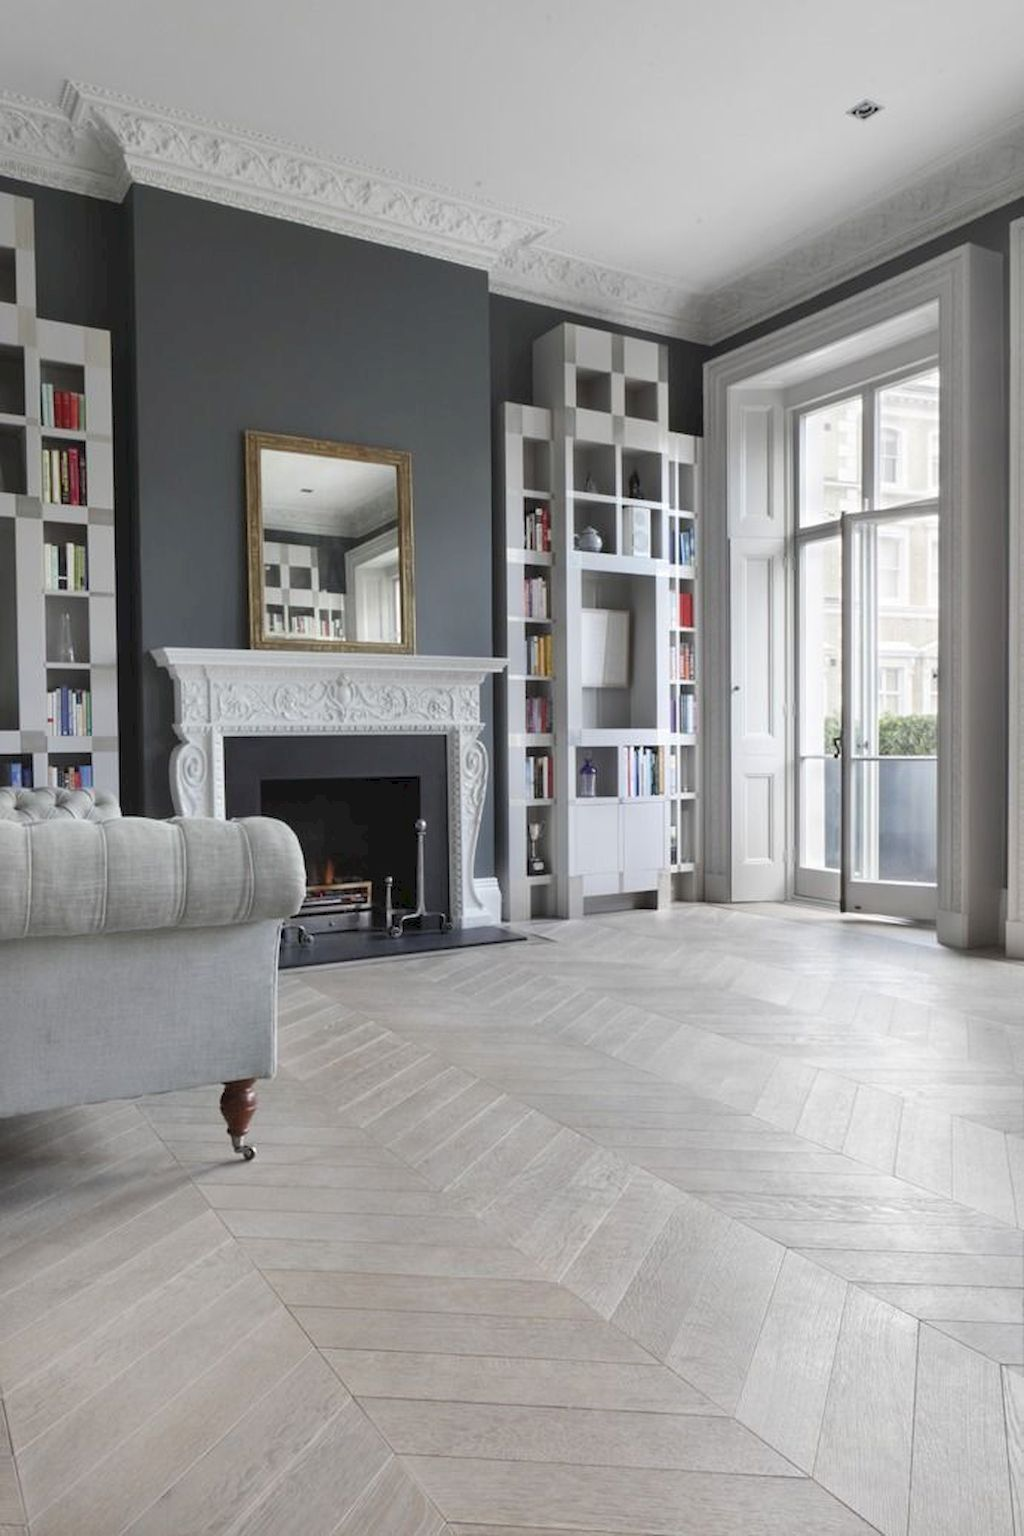 Exceptional Design and How to Beautify Wooden Floors (With